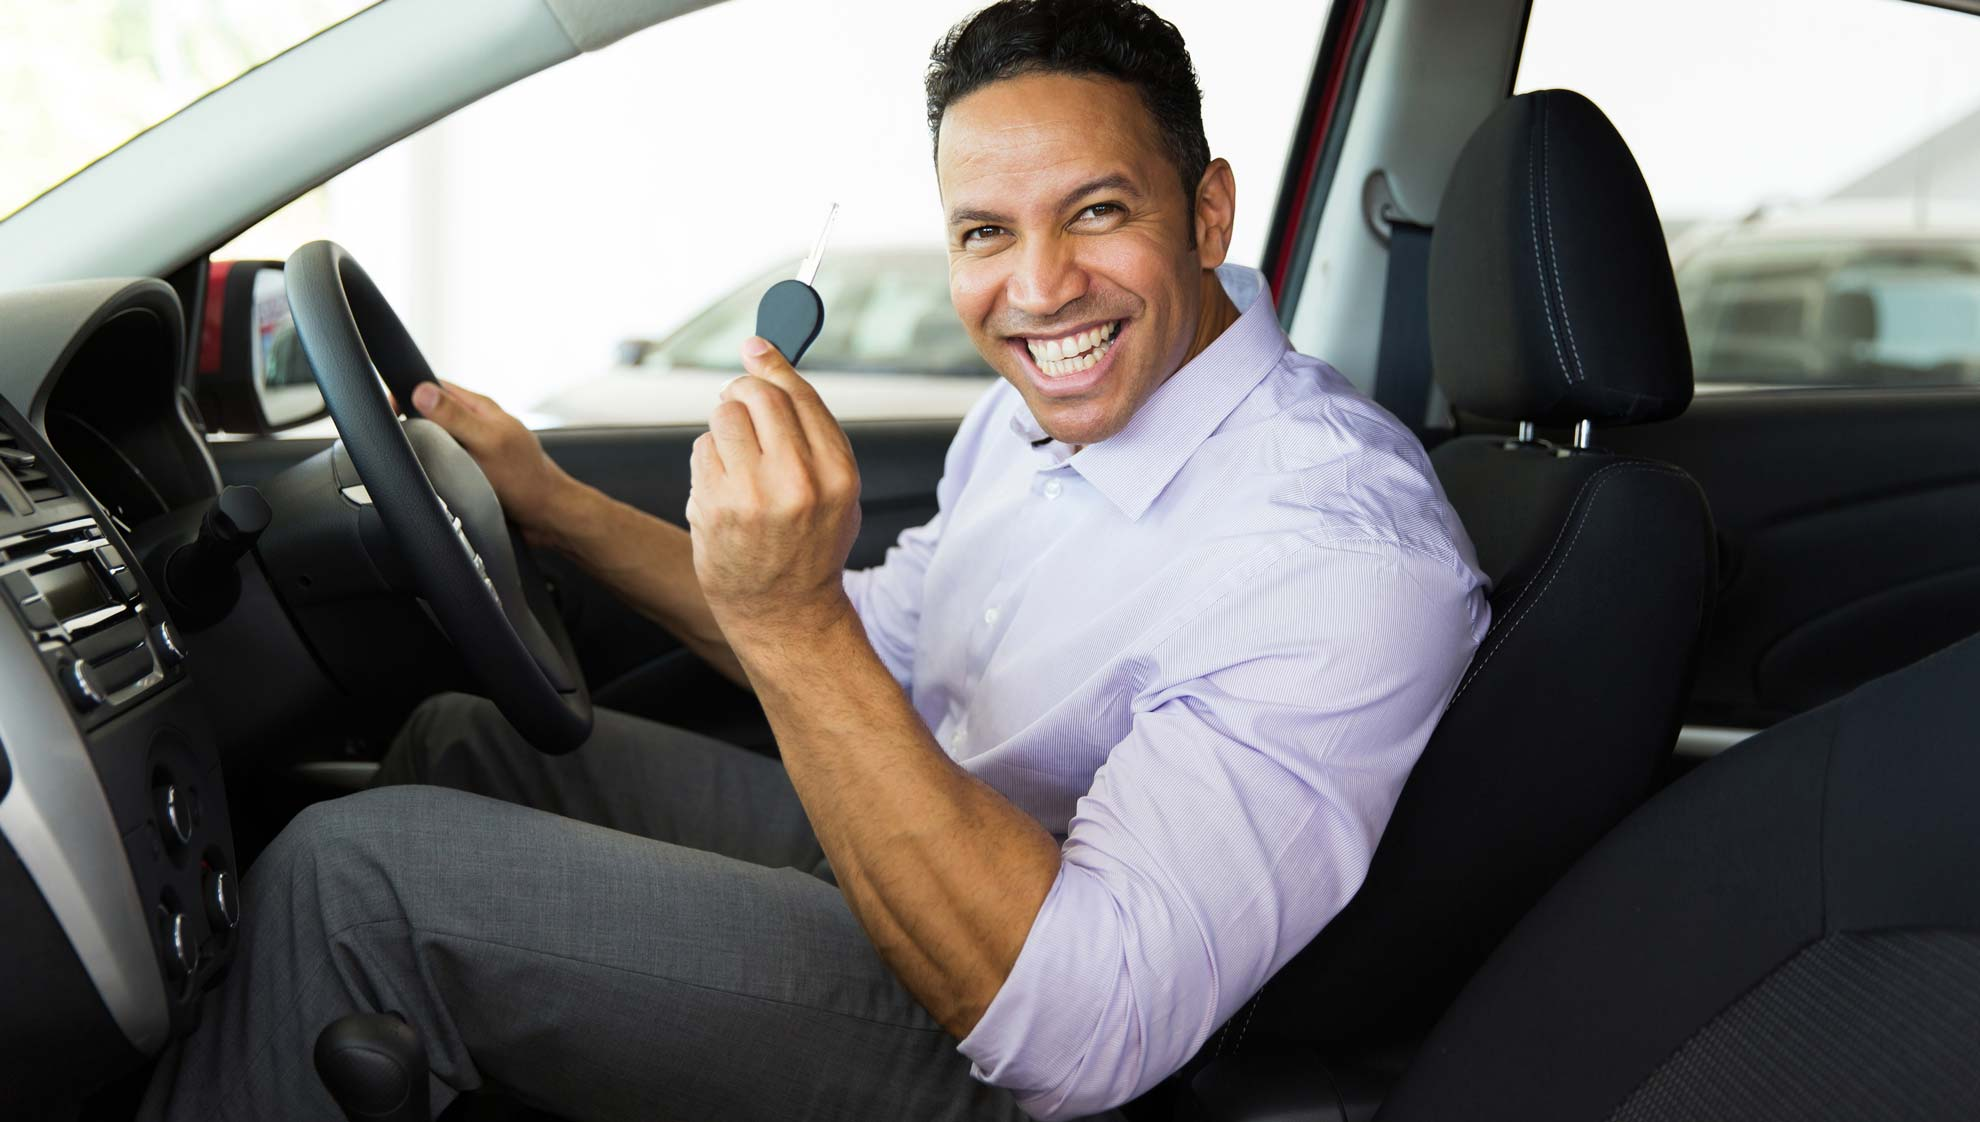 Happy driver getting car key